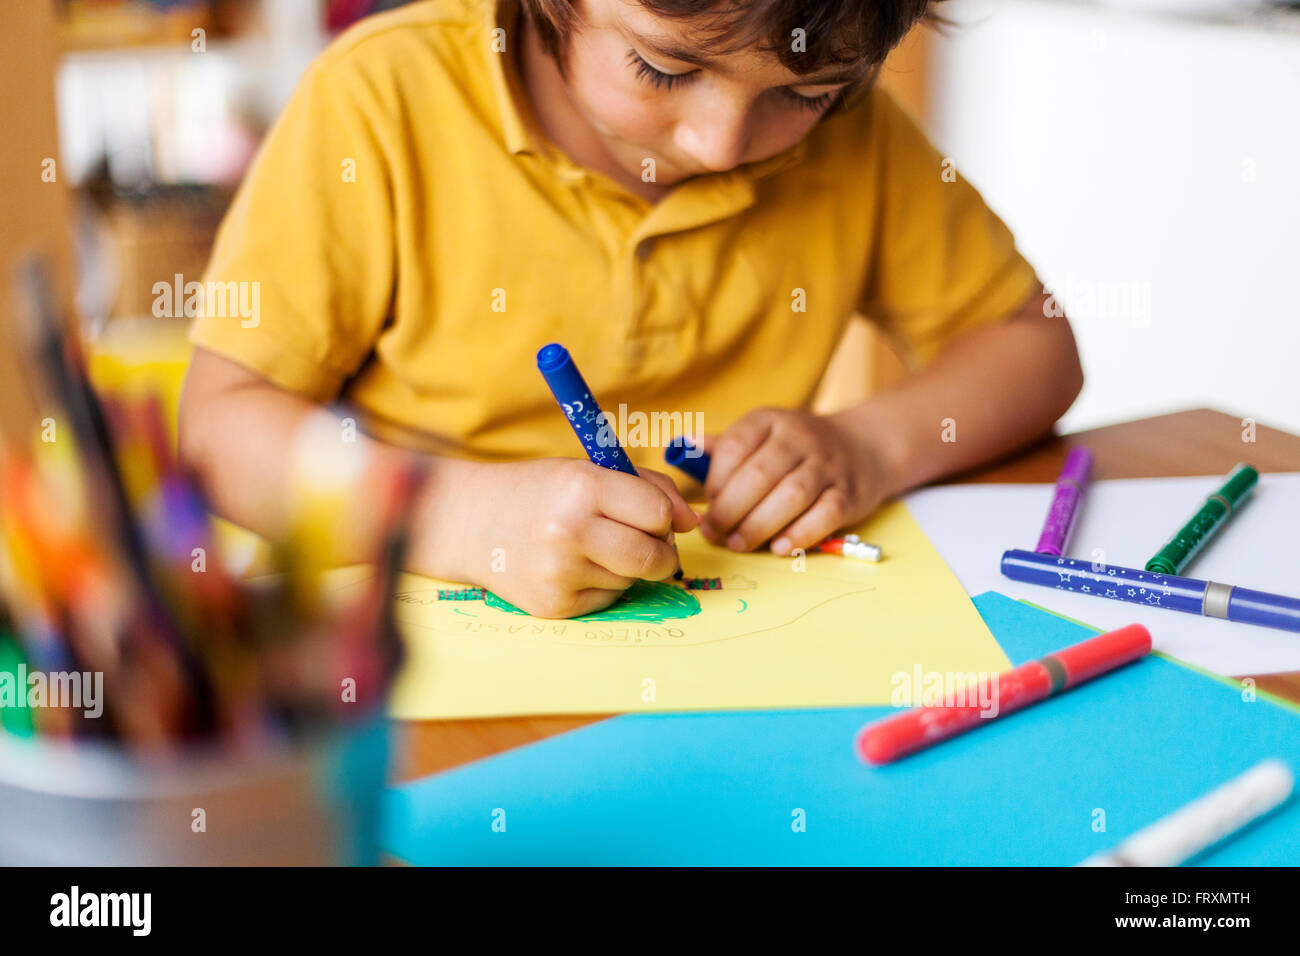 Little boy drawing on yellow paper - Stock Image